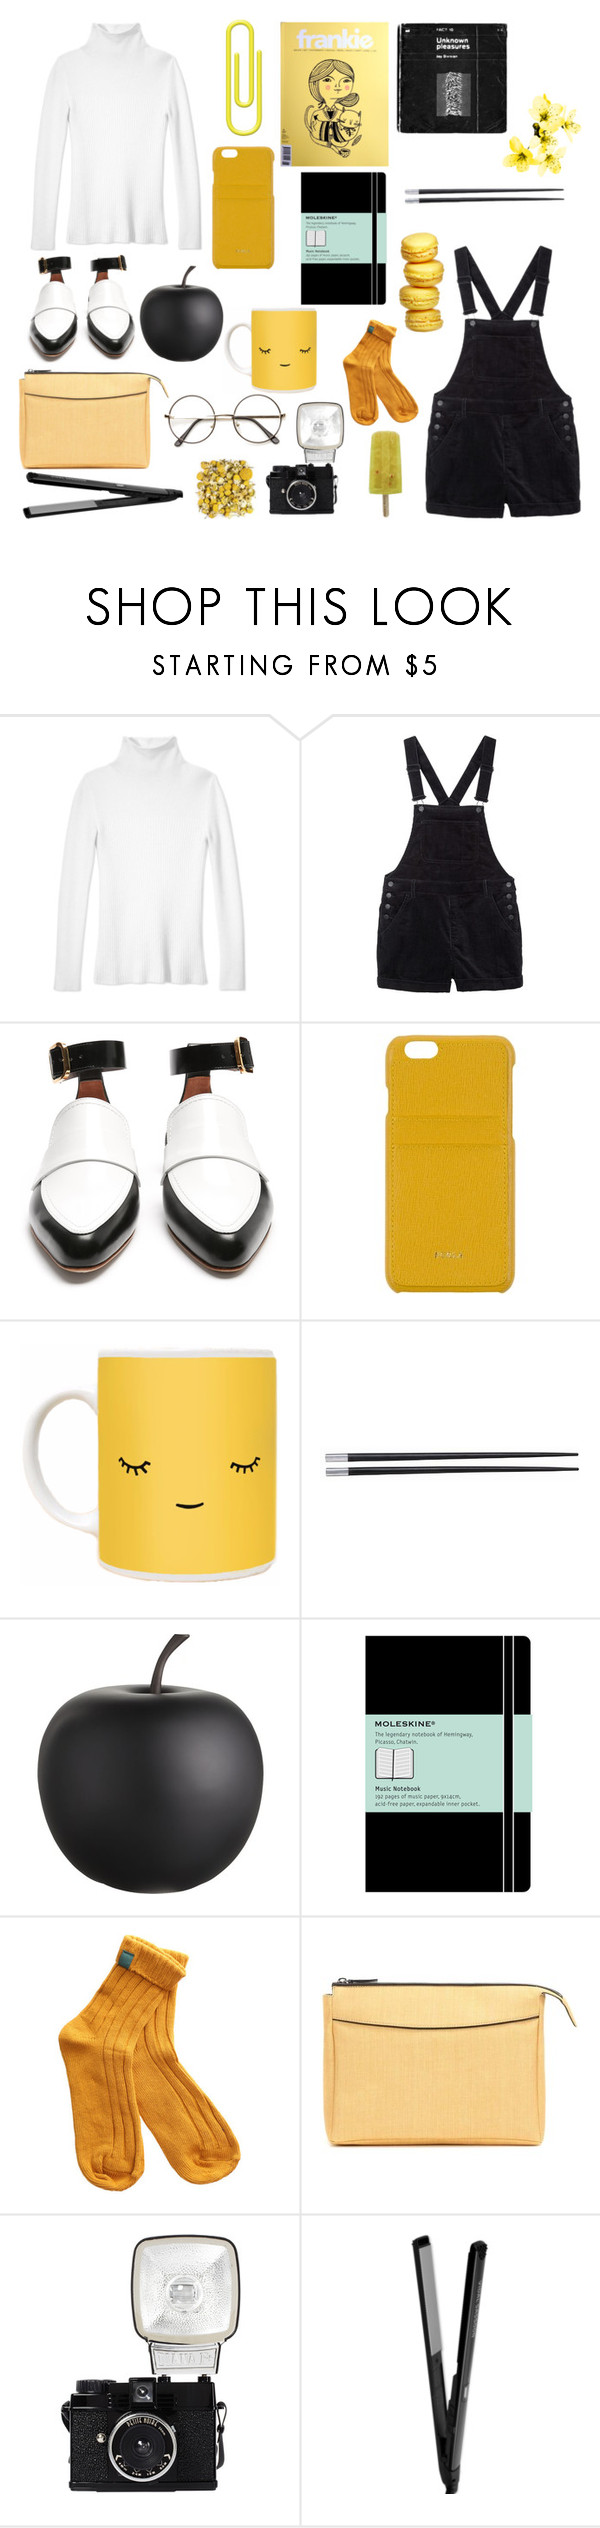 """""""Outfit #44"""" by anam53046 ❤ liked on Polyvore featuring Les Copains, Monki, Marni, Furla, Typhoon, CB2, Moleskine, The Row and Lomography"""